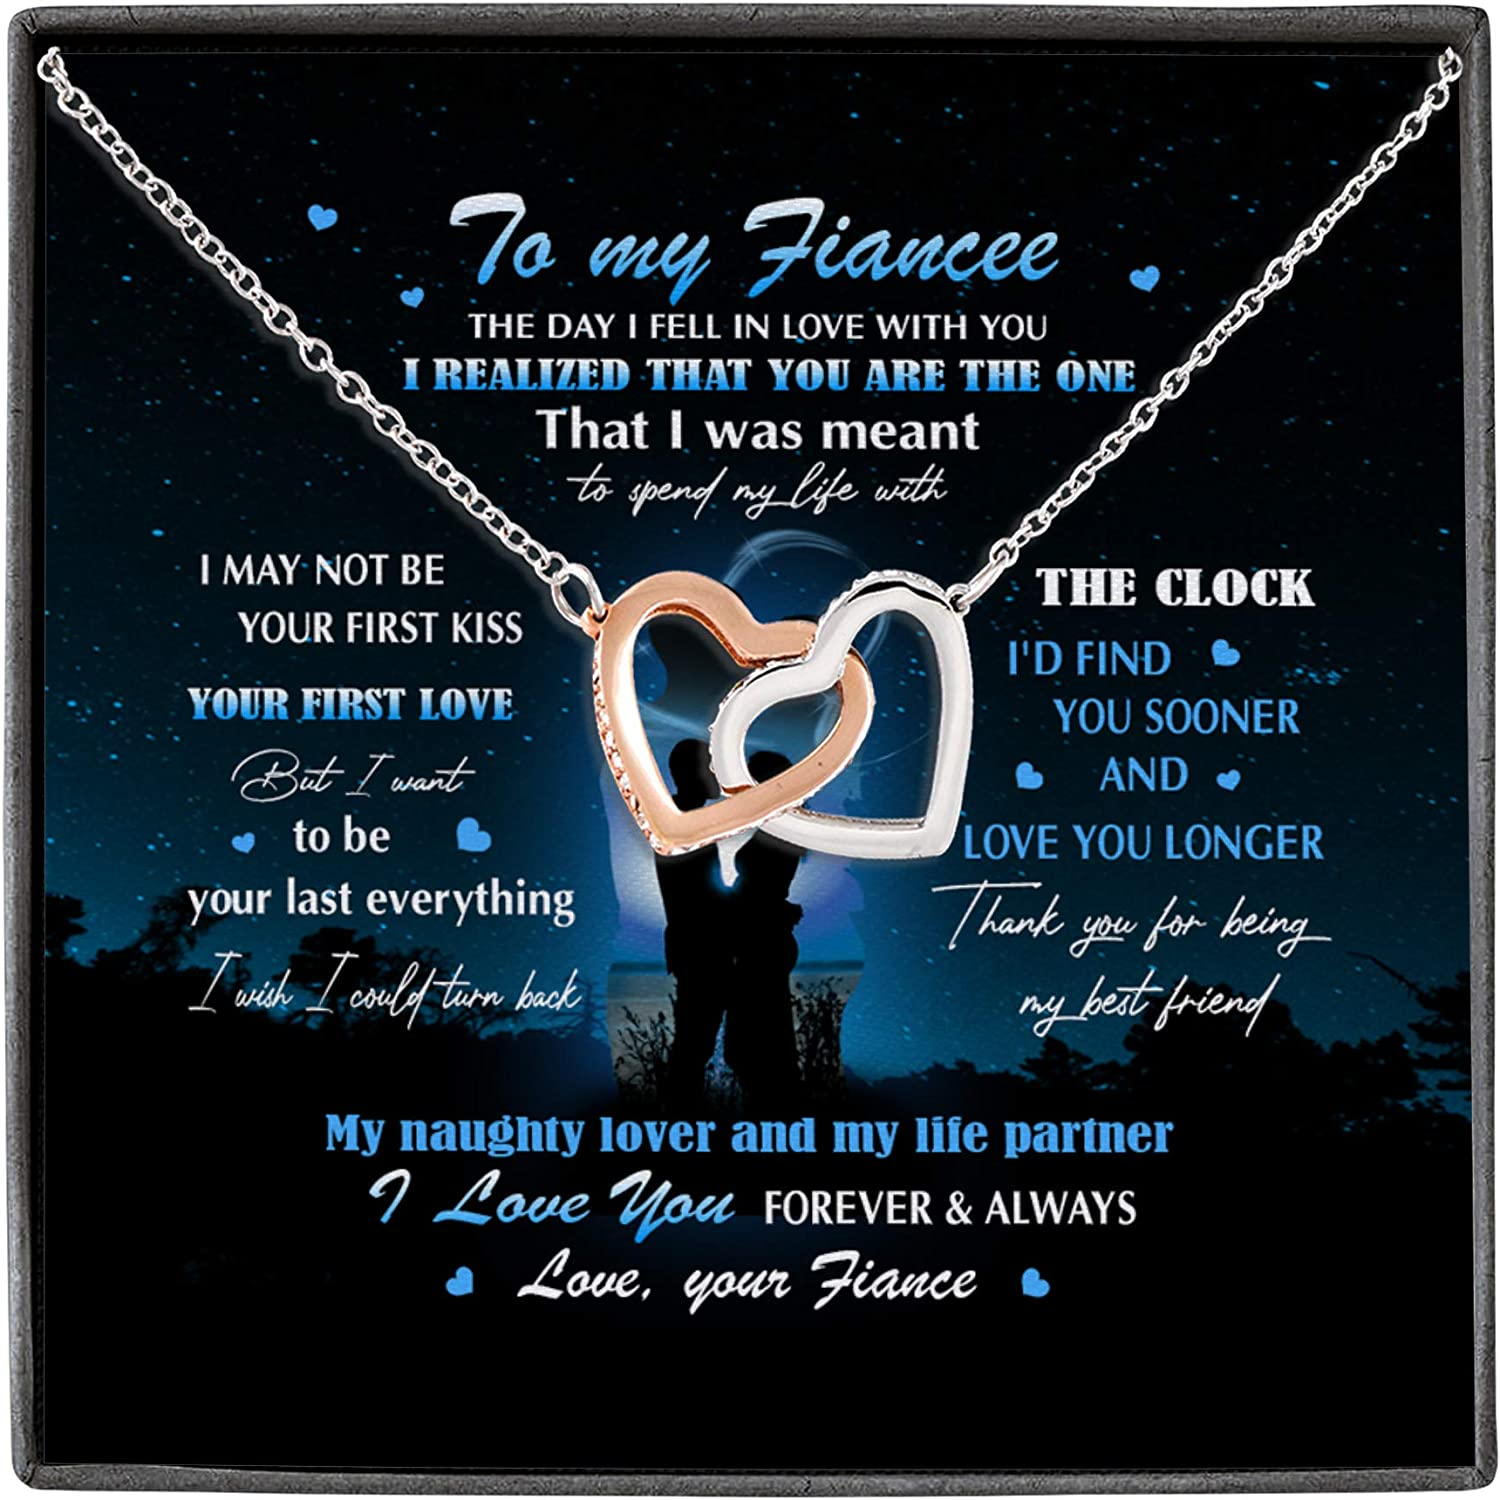 Fiance To My Fiancee The Day I You Love With New Free Shipping Tucson Mall Realized In Fell